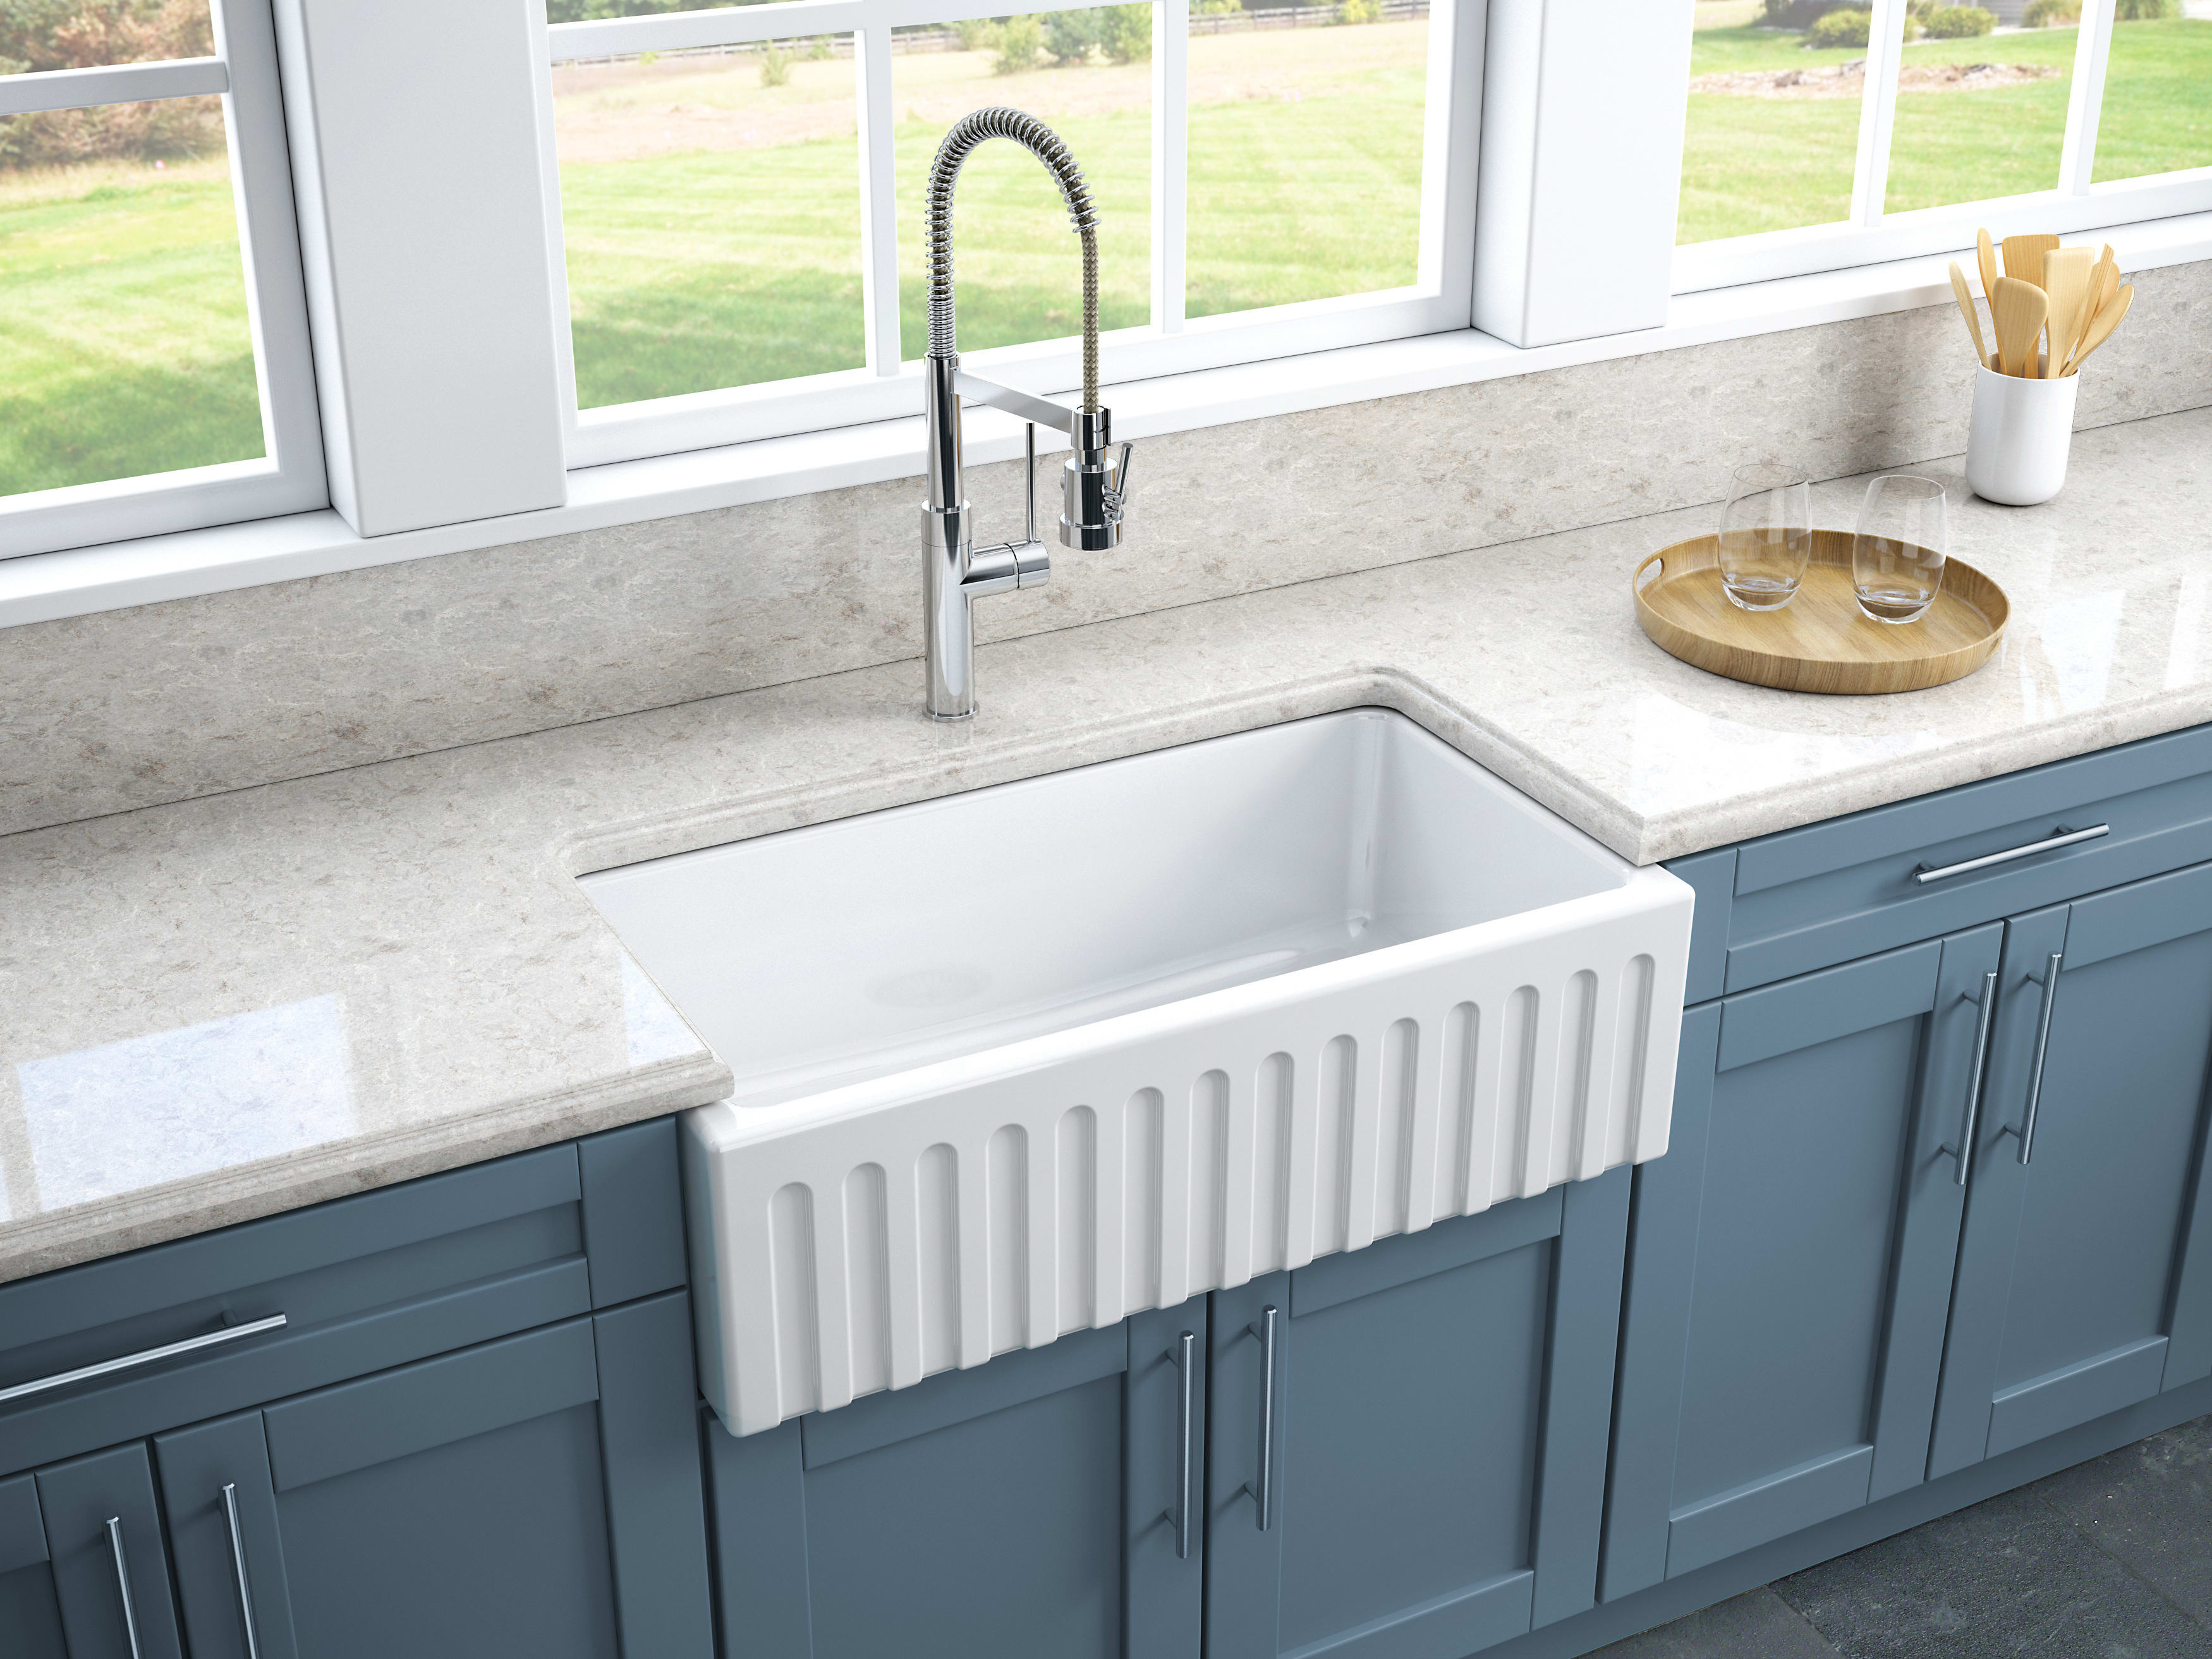 amazing marble countertop sink design and modern faucet.htm latoscana lfs3318 33  reversible fireclay farmhouse sink  reversible fireclay farmhouse sink